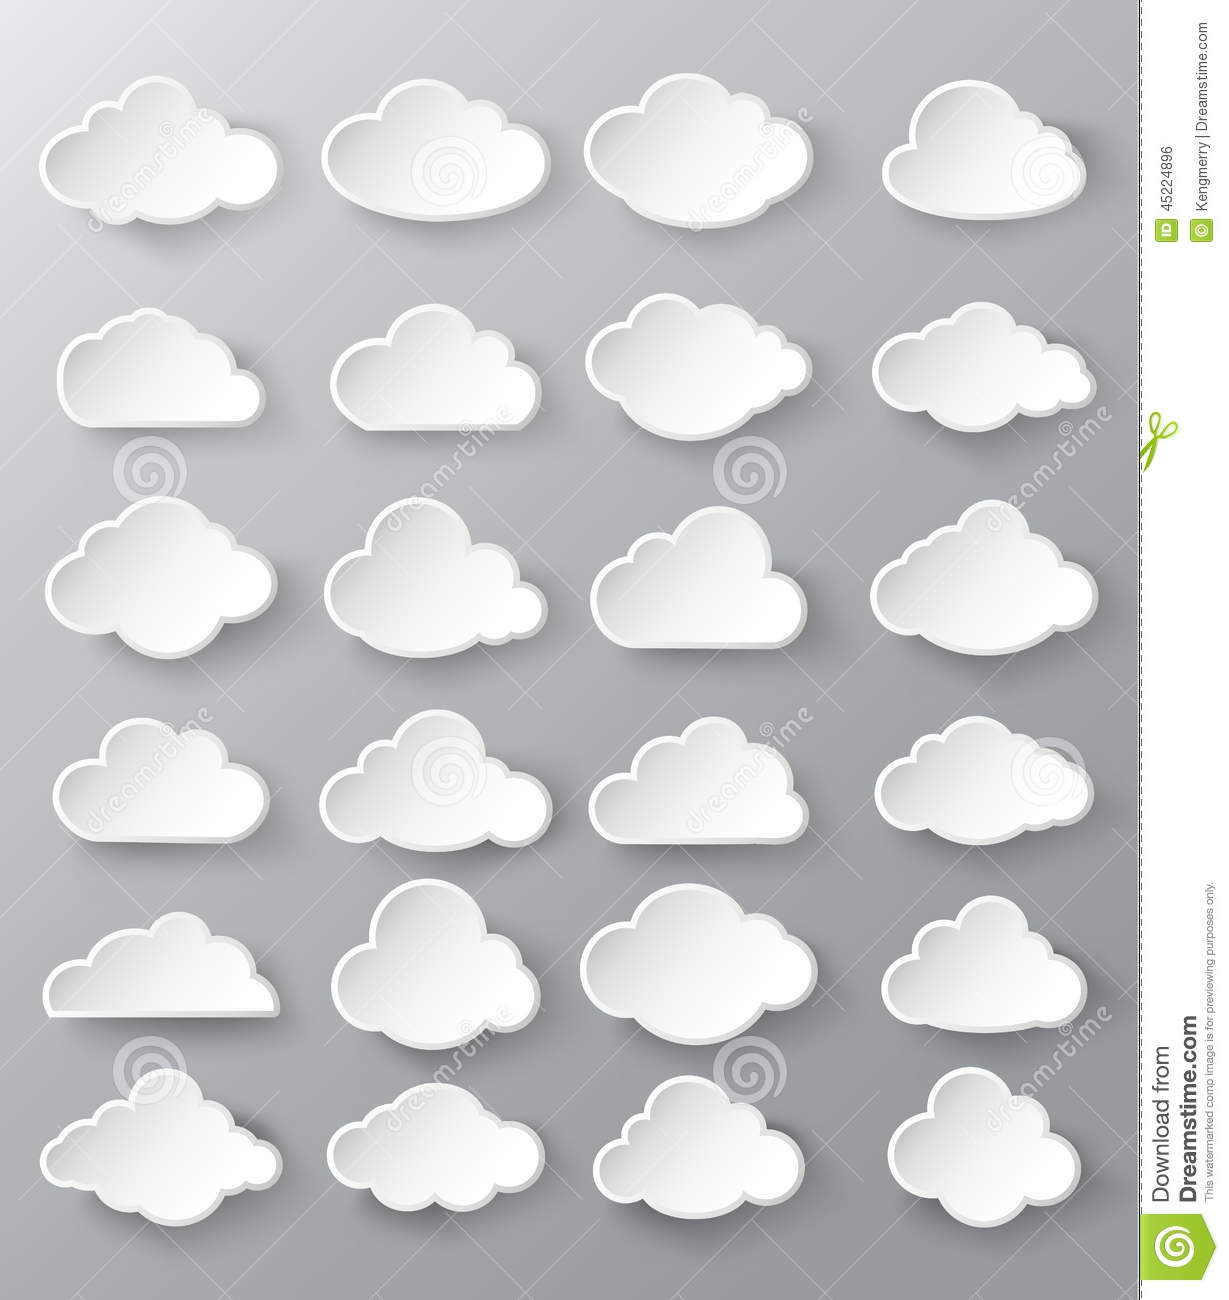 abstract speech bubbles in the shape of clouds stock. Black Bedroom Furniture Sets. Home Design Ideas